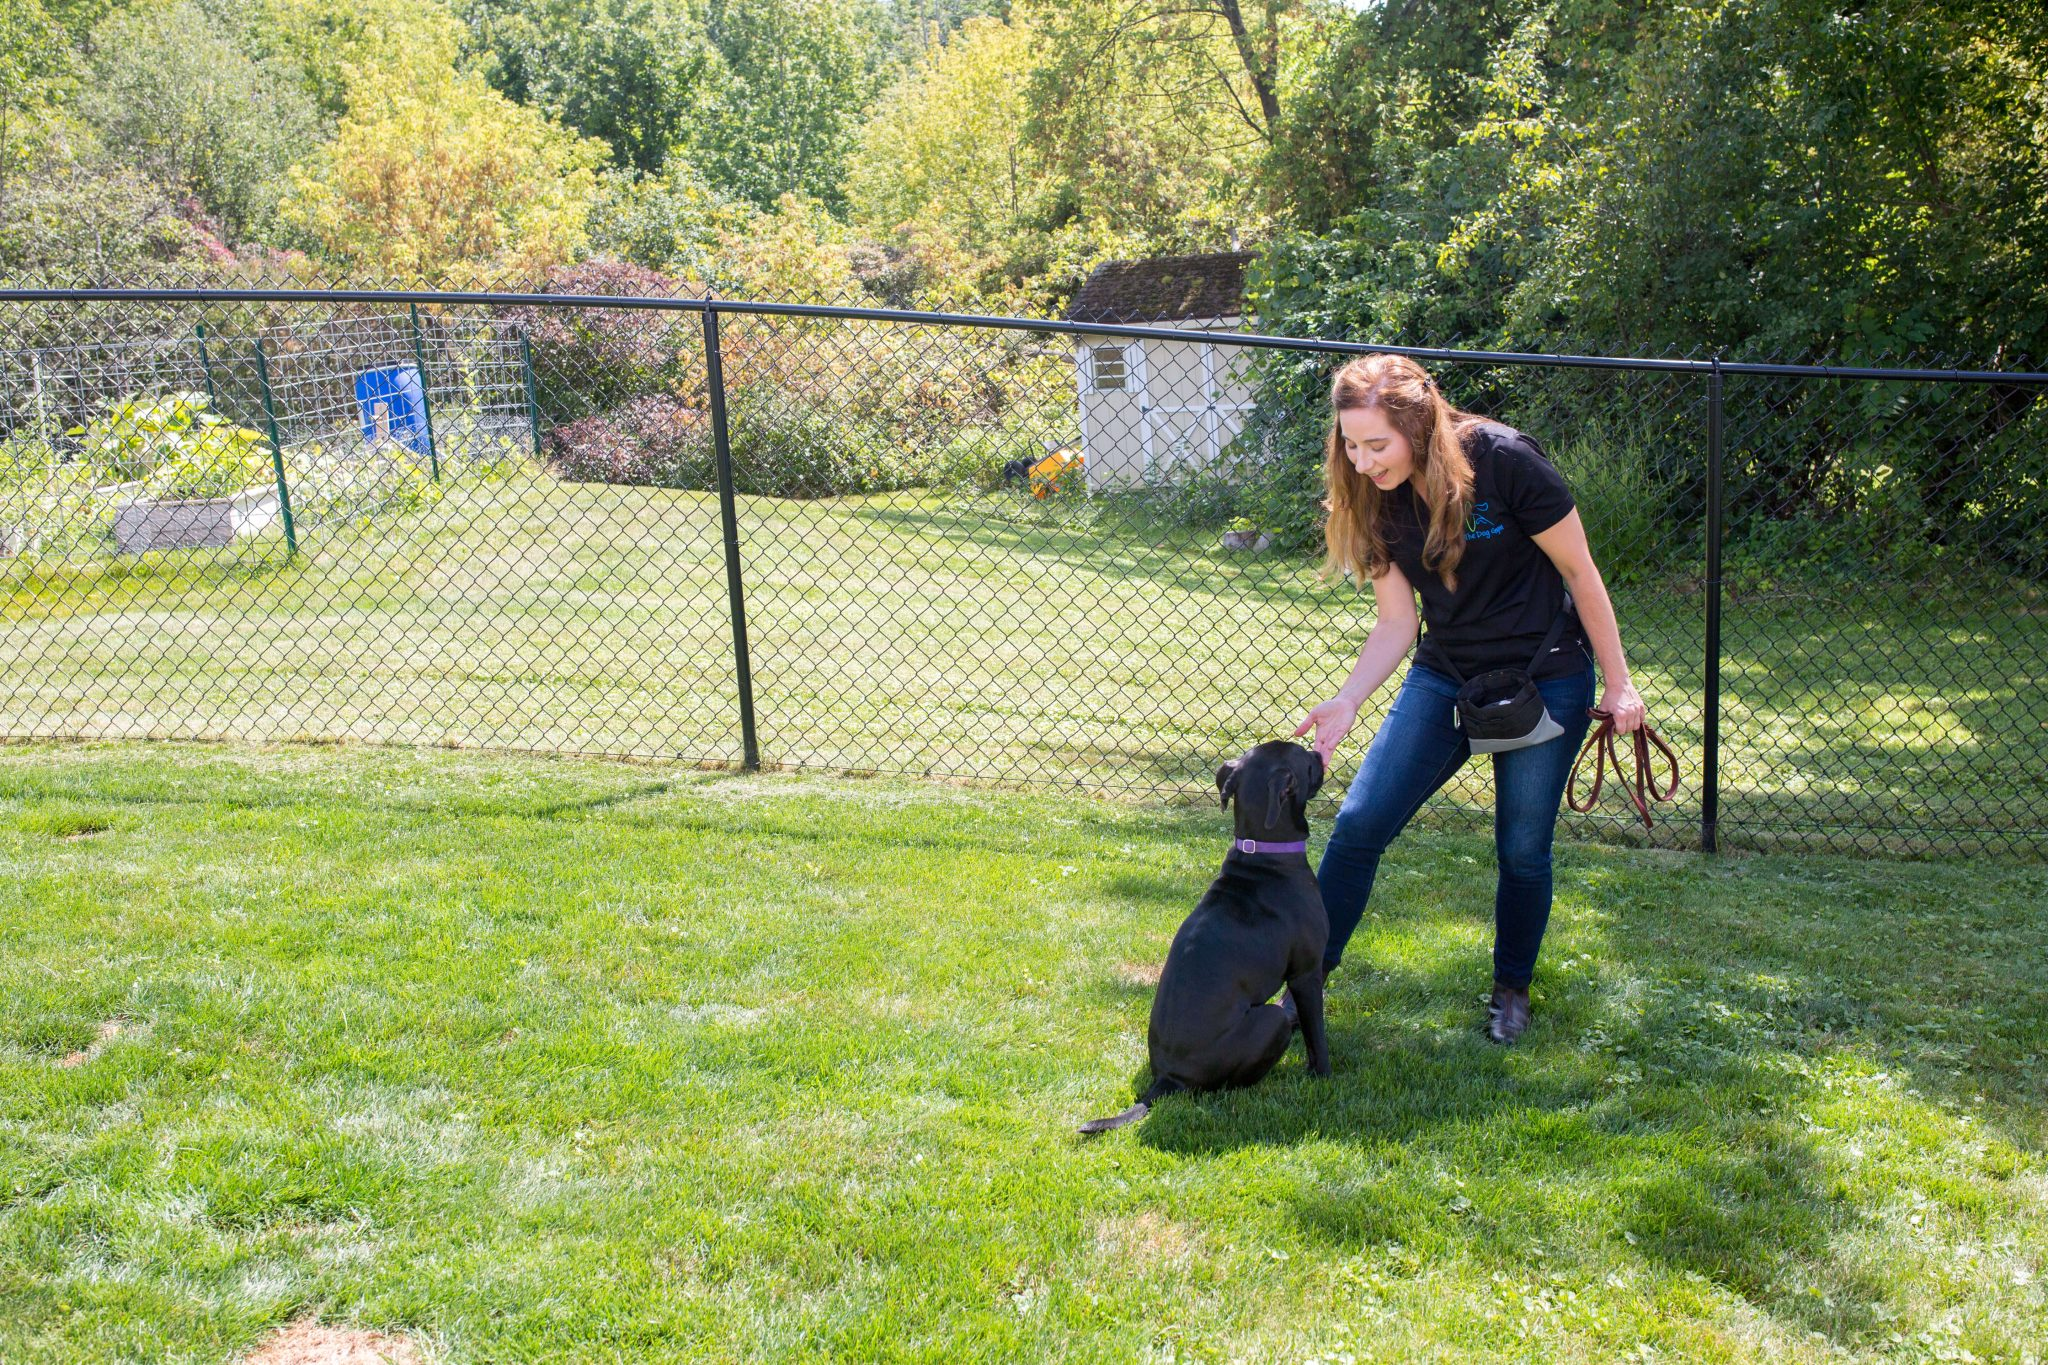 professional dog trainer - michele lennon teaches dog to stay